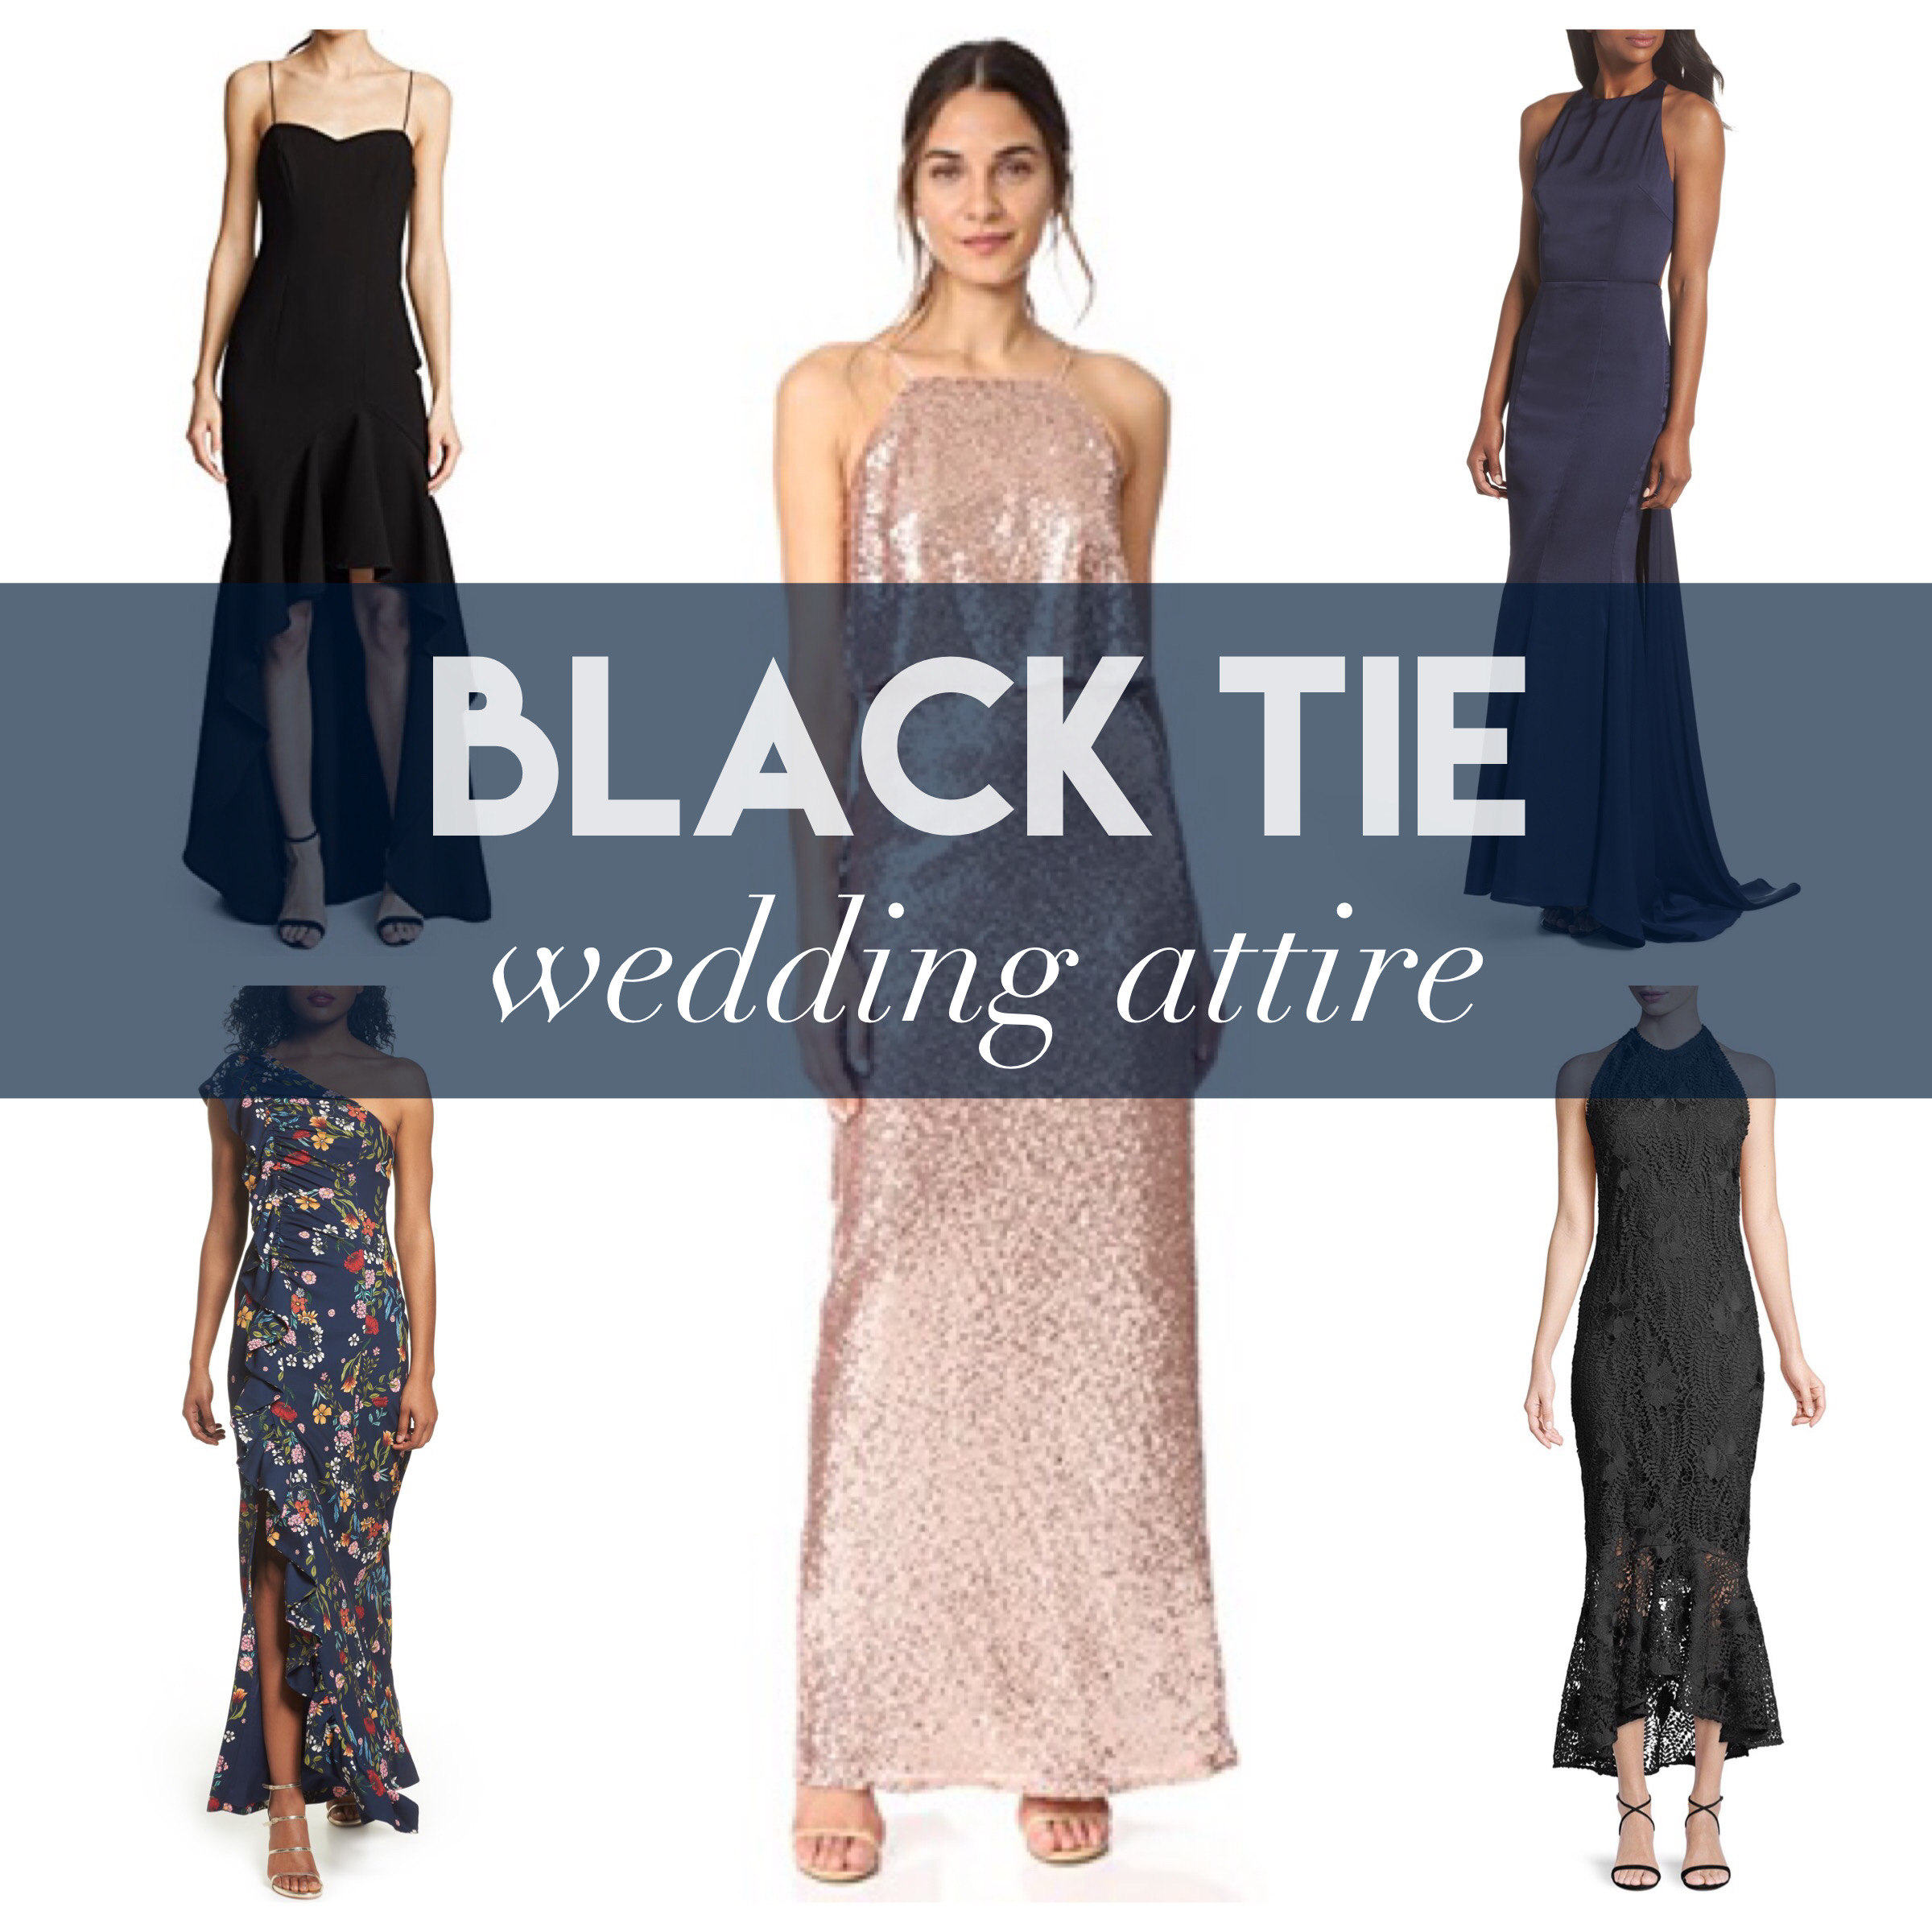 What To Wear To A Black Tie Wedding Attire Dresses Formal Floor Length